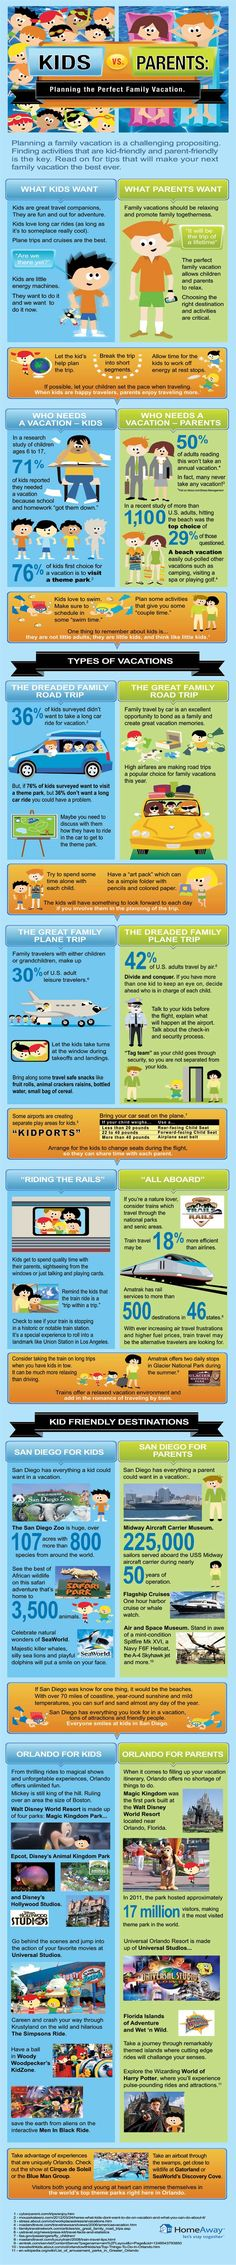 Vacations for Parents and Kids [Infographic]